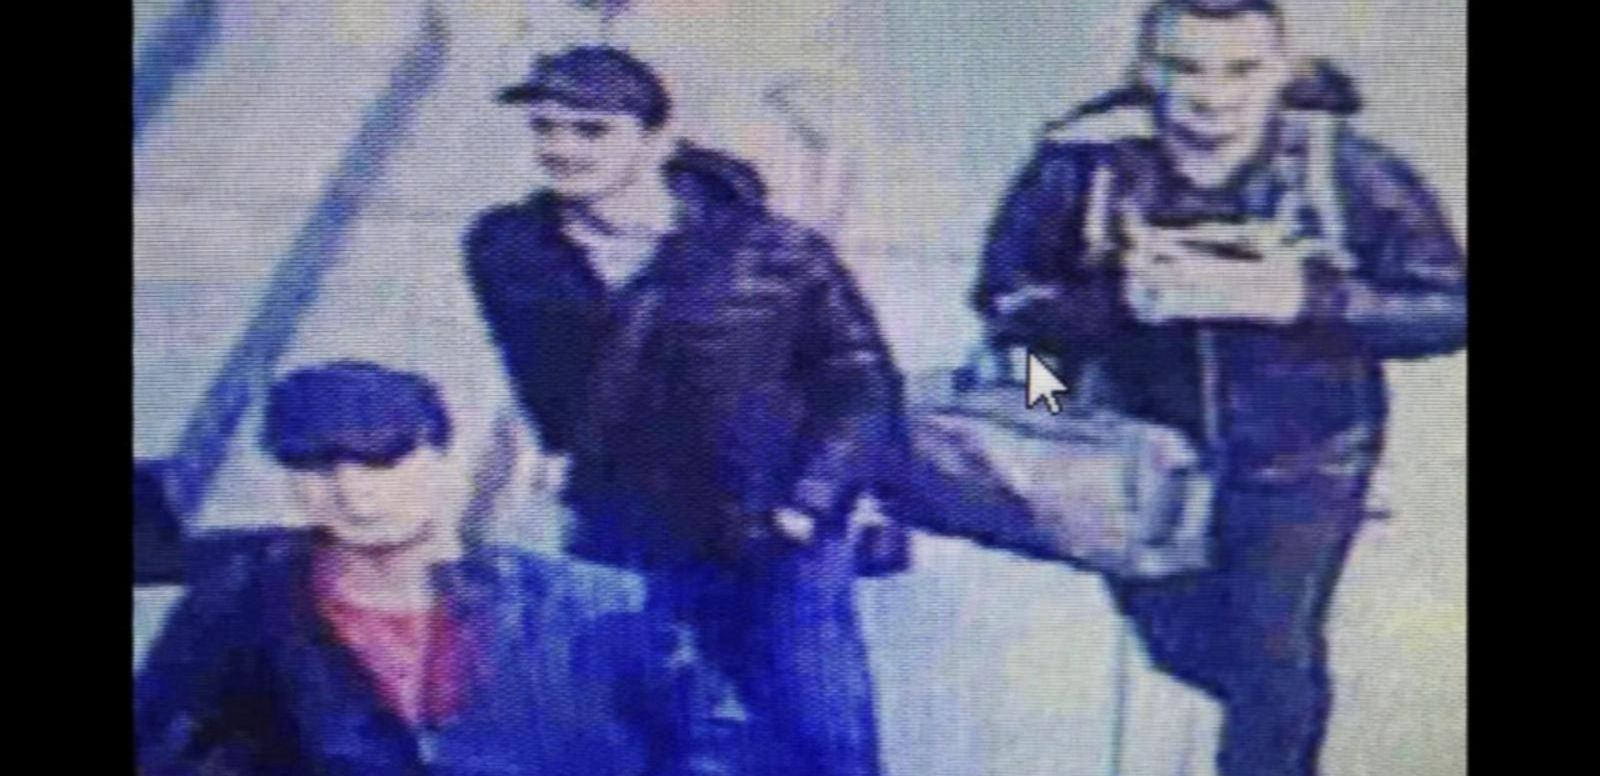 VIDEO: New Image Released of Istanbul Airport Suicide Attackers